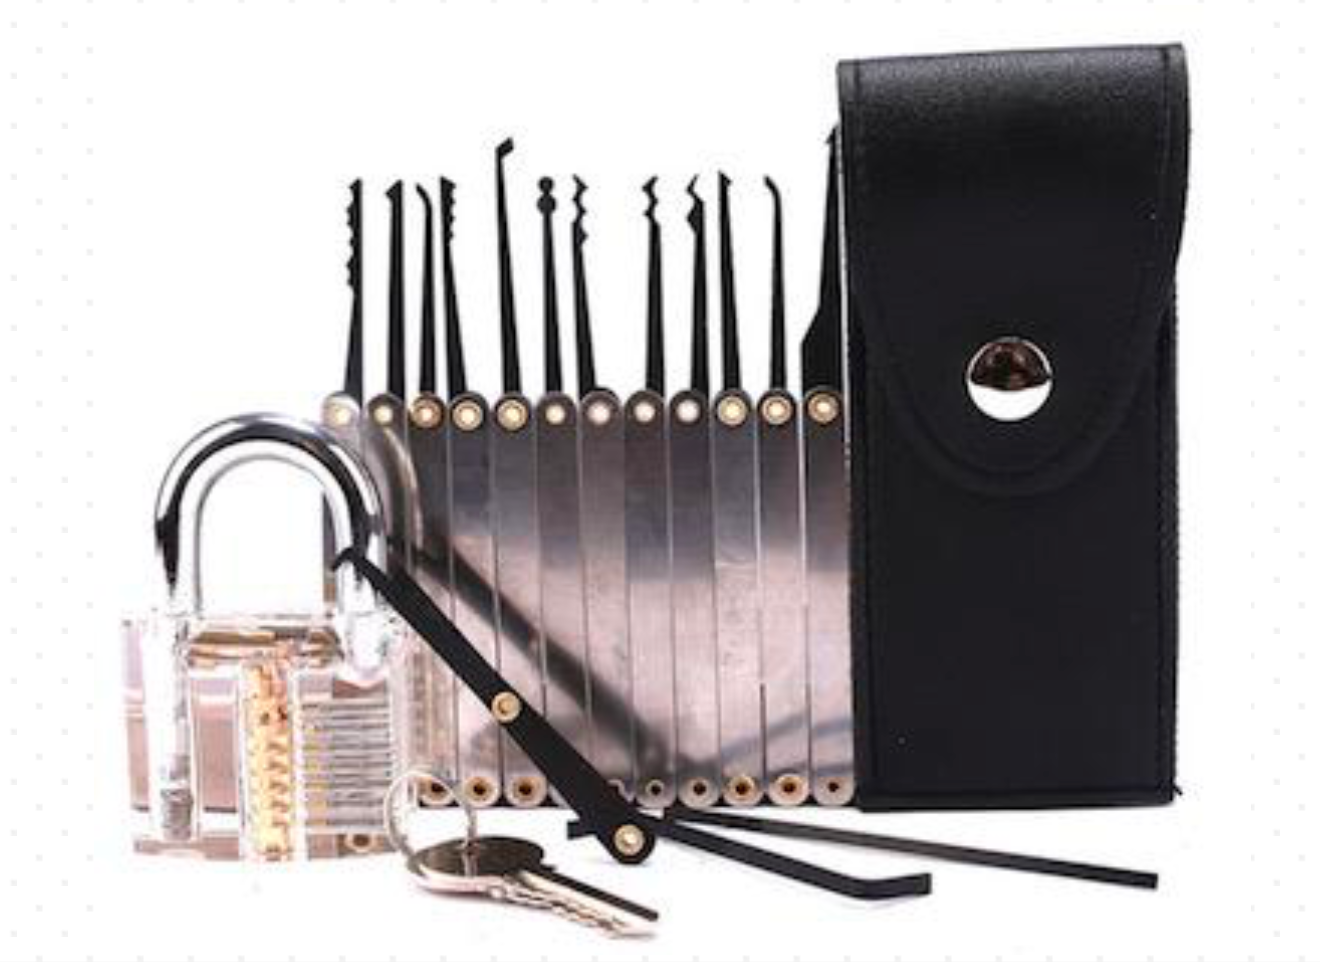 12 pcs hook pick with padlock - Lock Pick Set